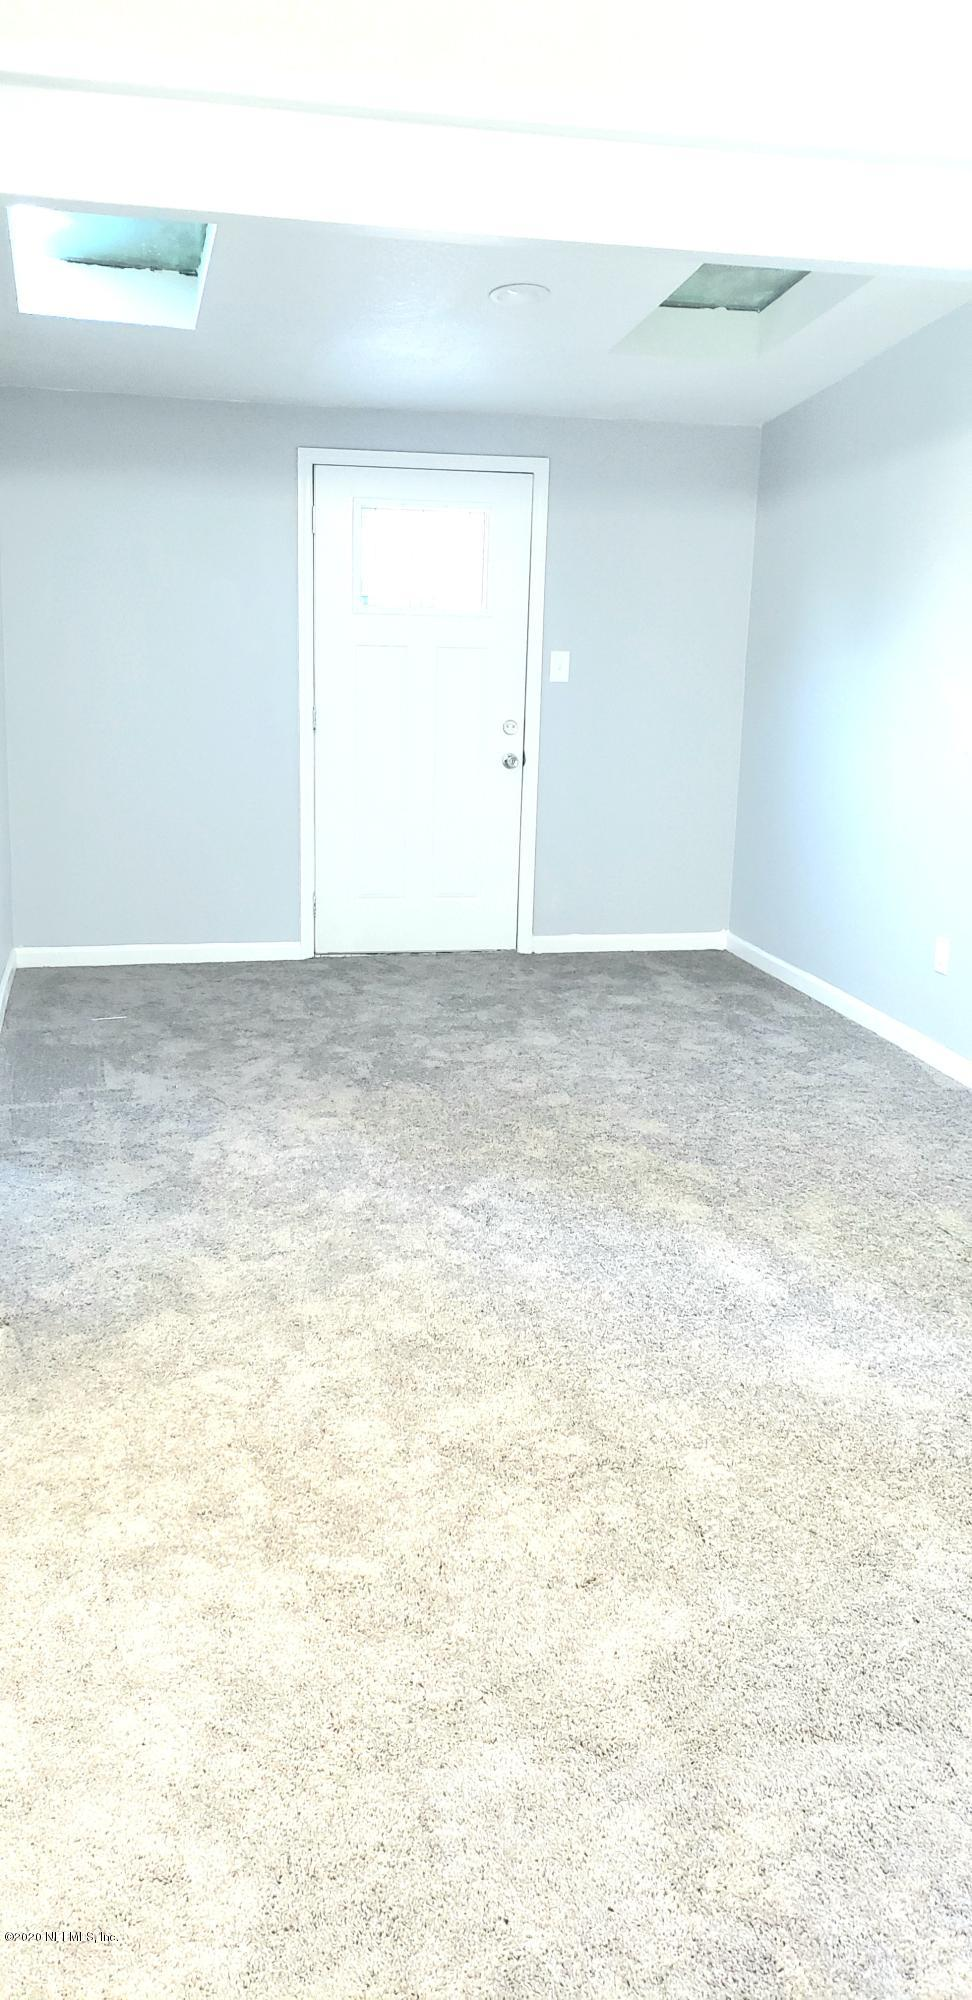 2755 GREEN, JACKSONVILLE, FLORIDA 32205, 3 Bedrooms Bedrooms, ,Residential,For sale,GREEN,1080740